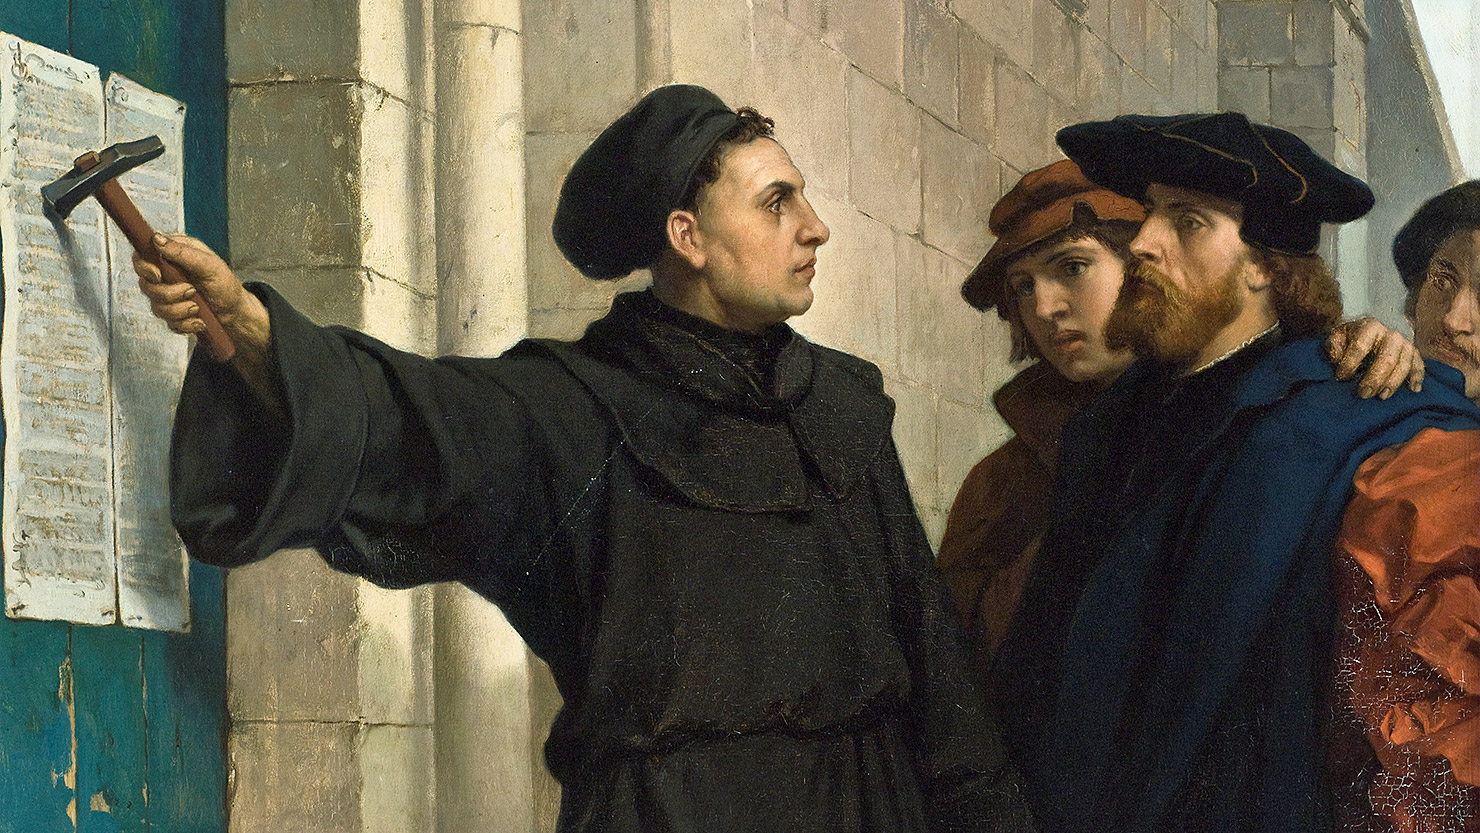 martin luther and the protestant reformation Martin luther (november 10, 1483 to february 18, 1546) was a german monk who began the protestant reformation in the 16th century, becoming one of the most influential and controversial figures in.